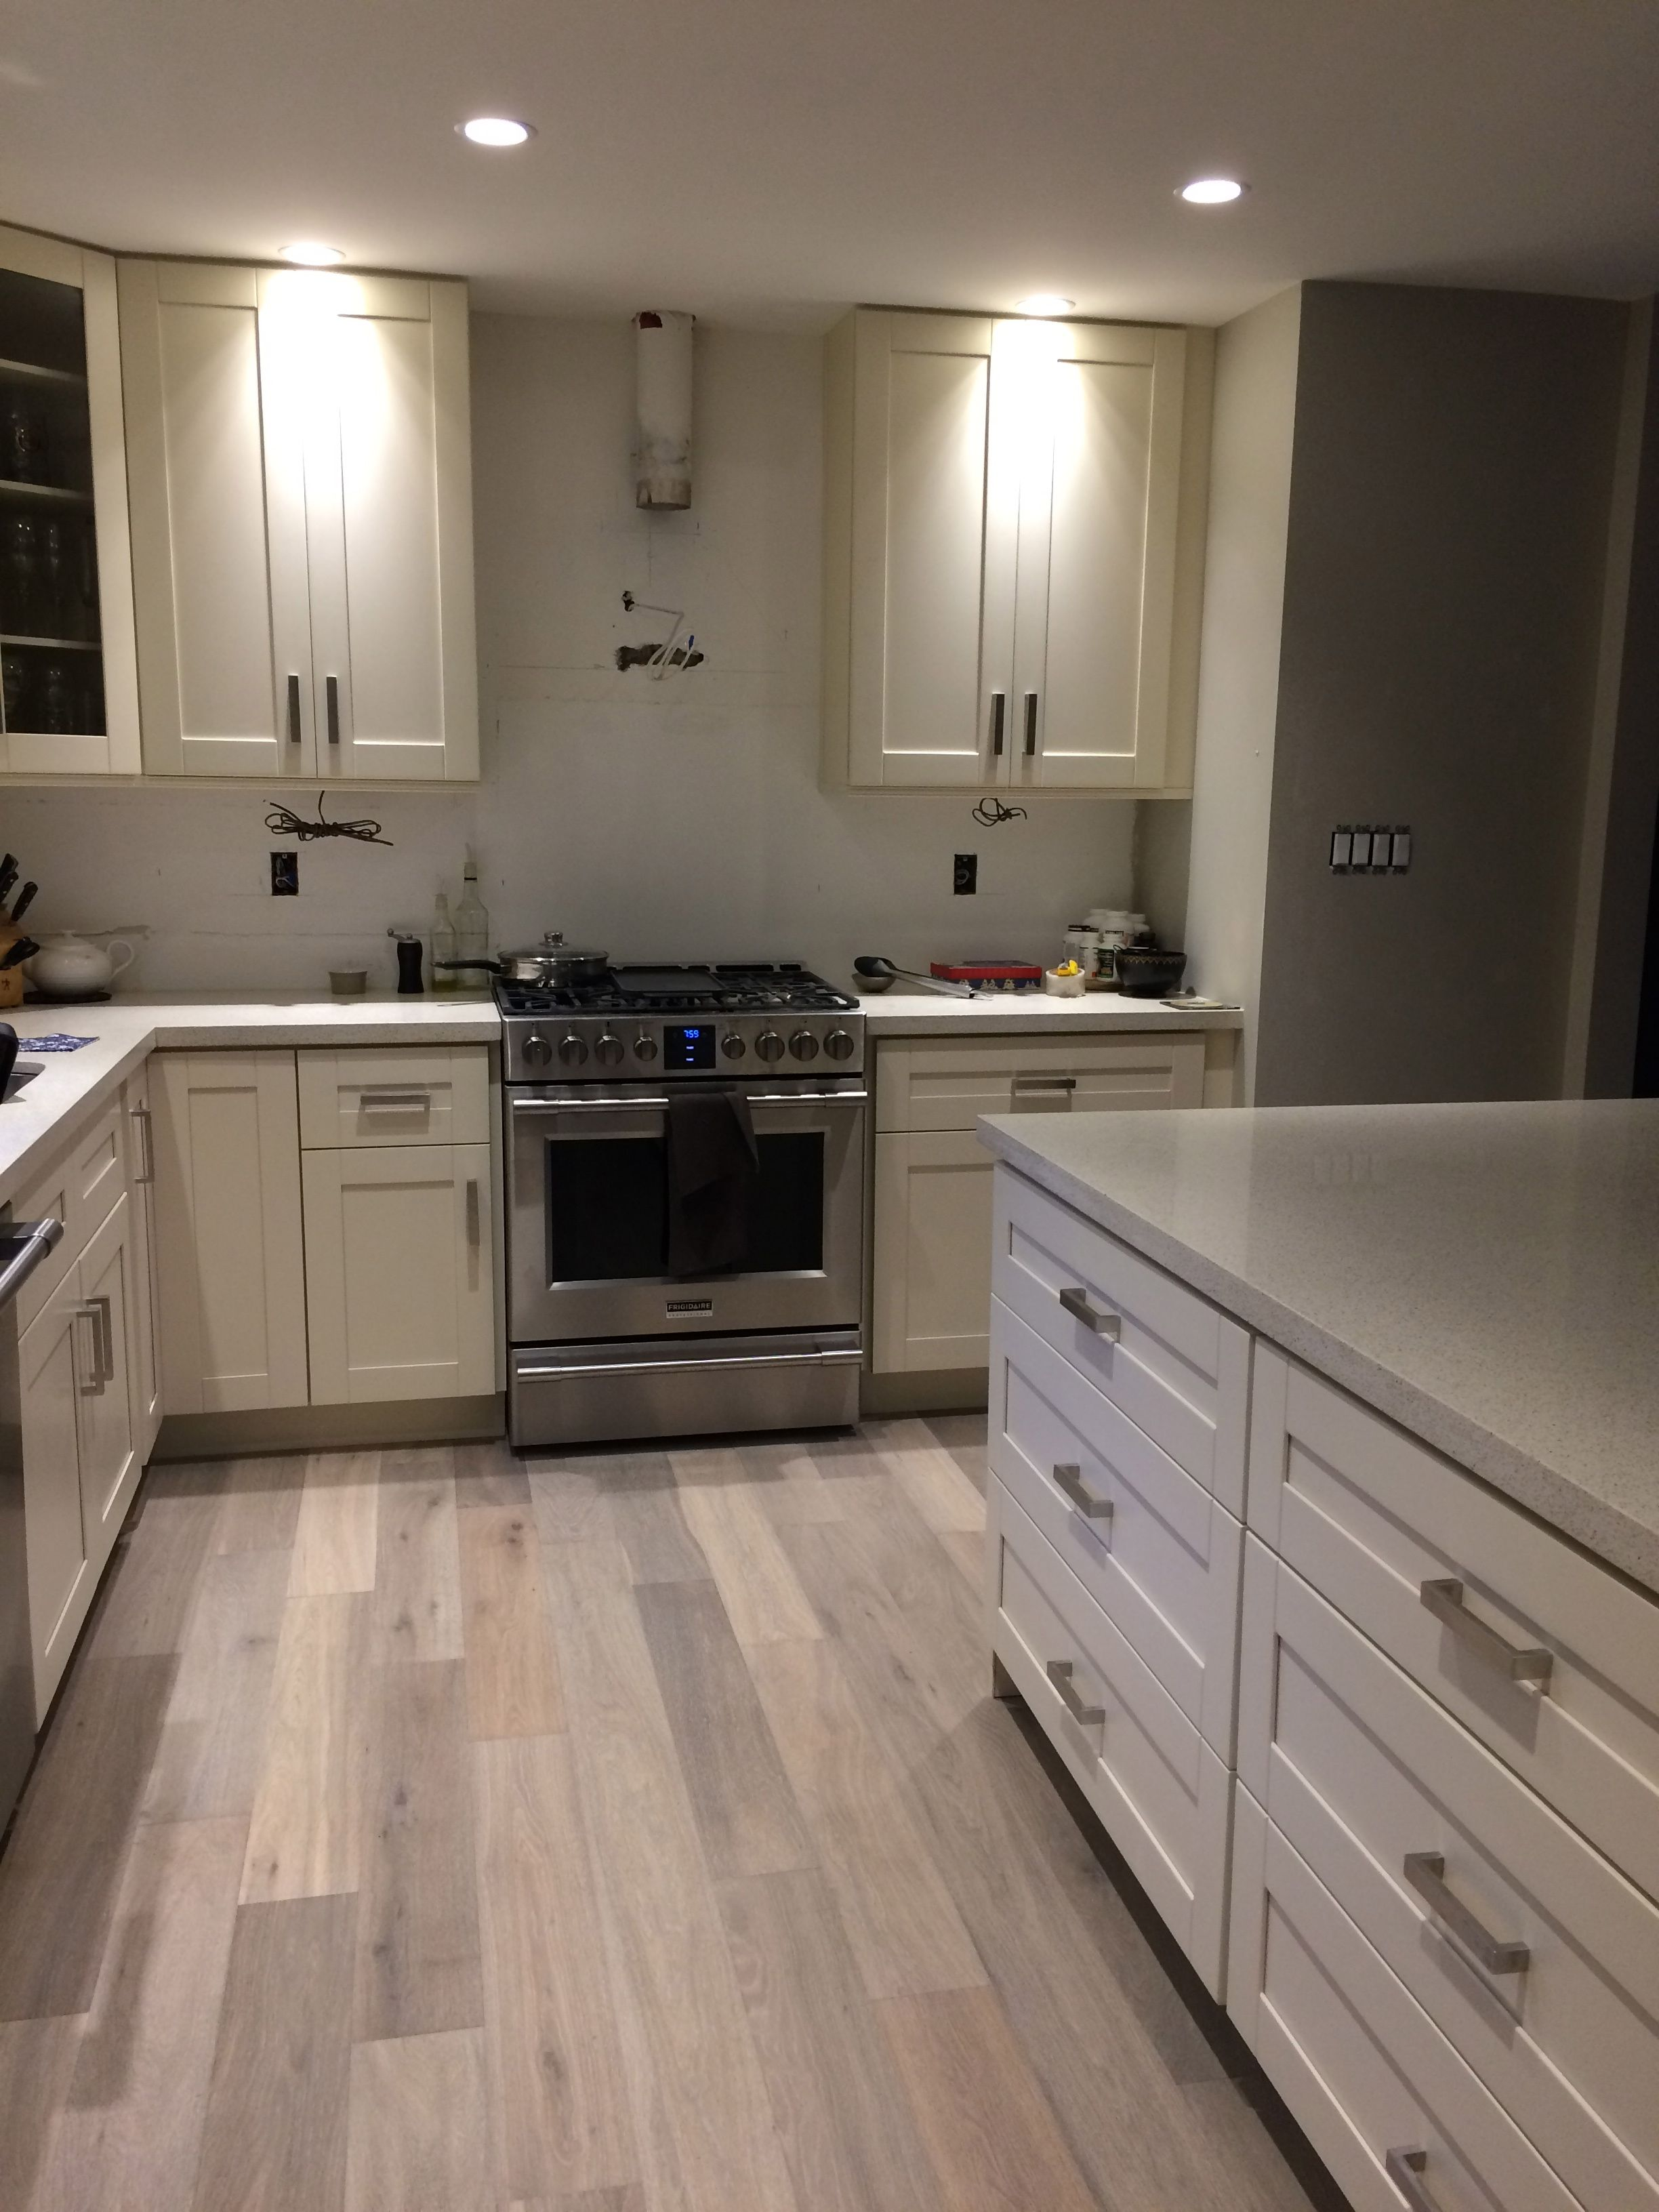 Pin By Kory Adelman On House Stuff White Shaker Cabinets Kitchen Remodel Shaker Cabinets